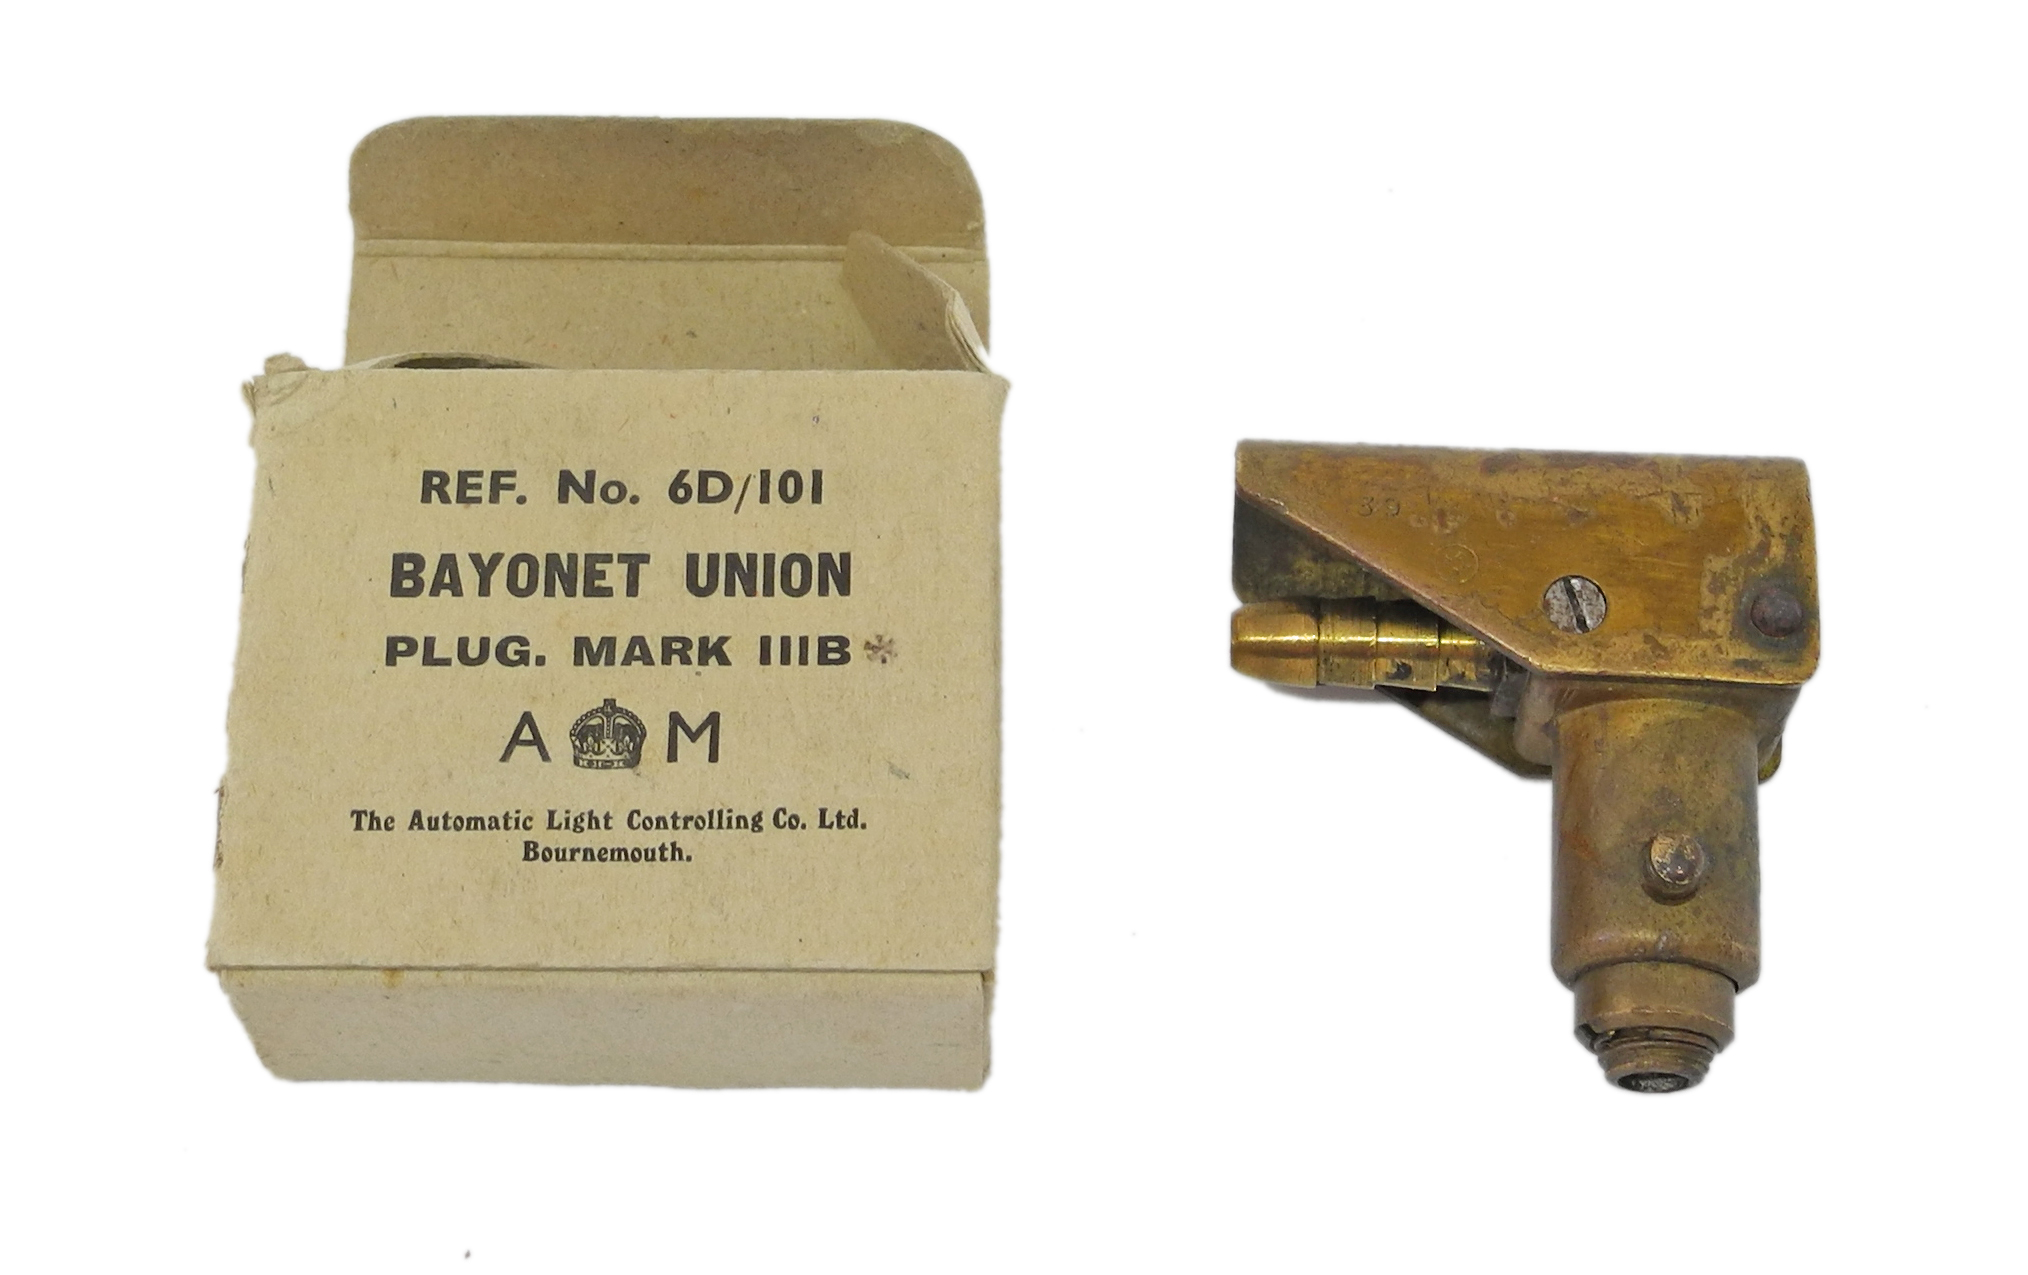 RAF D mask tube bayonet union